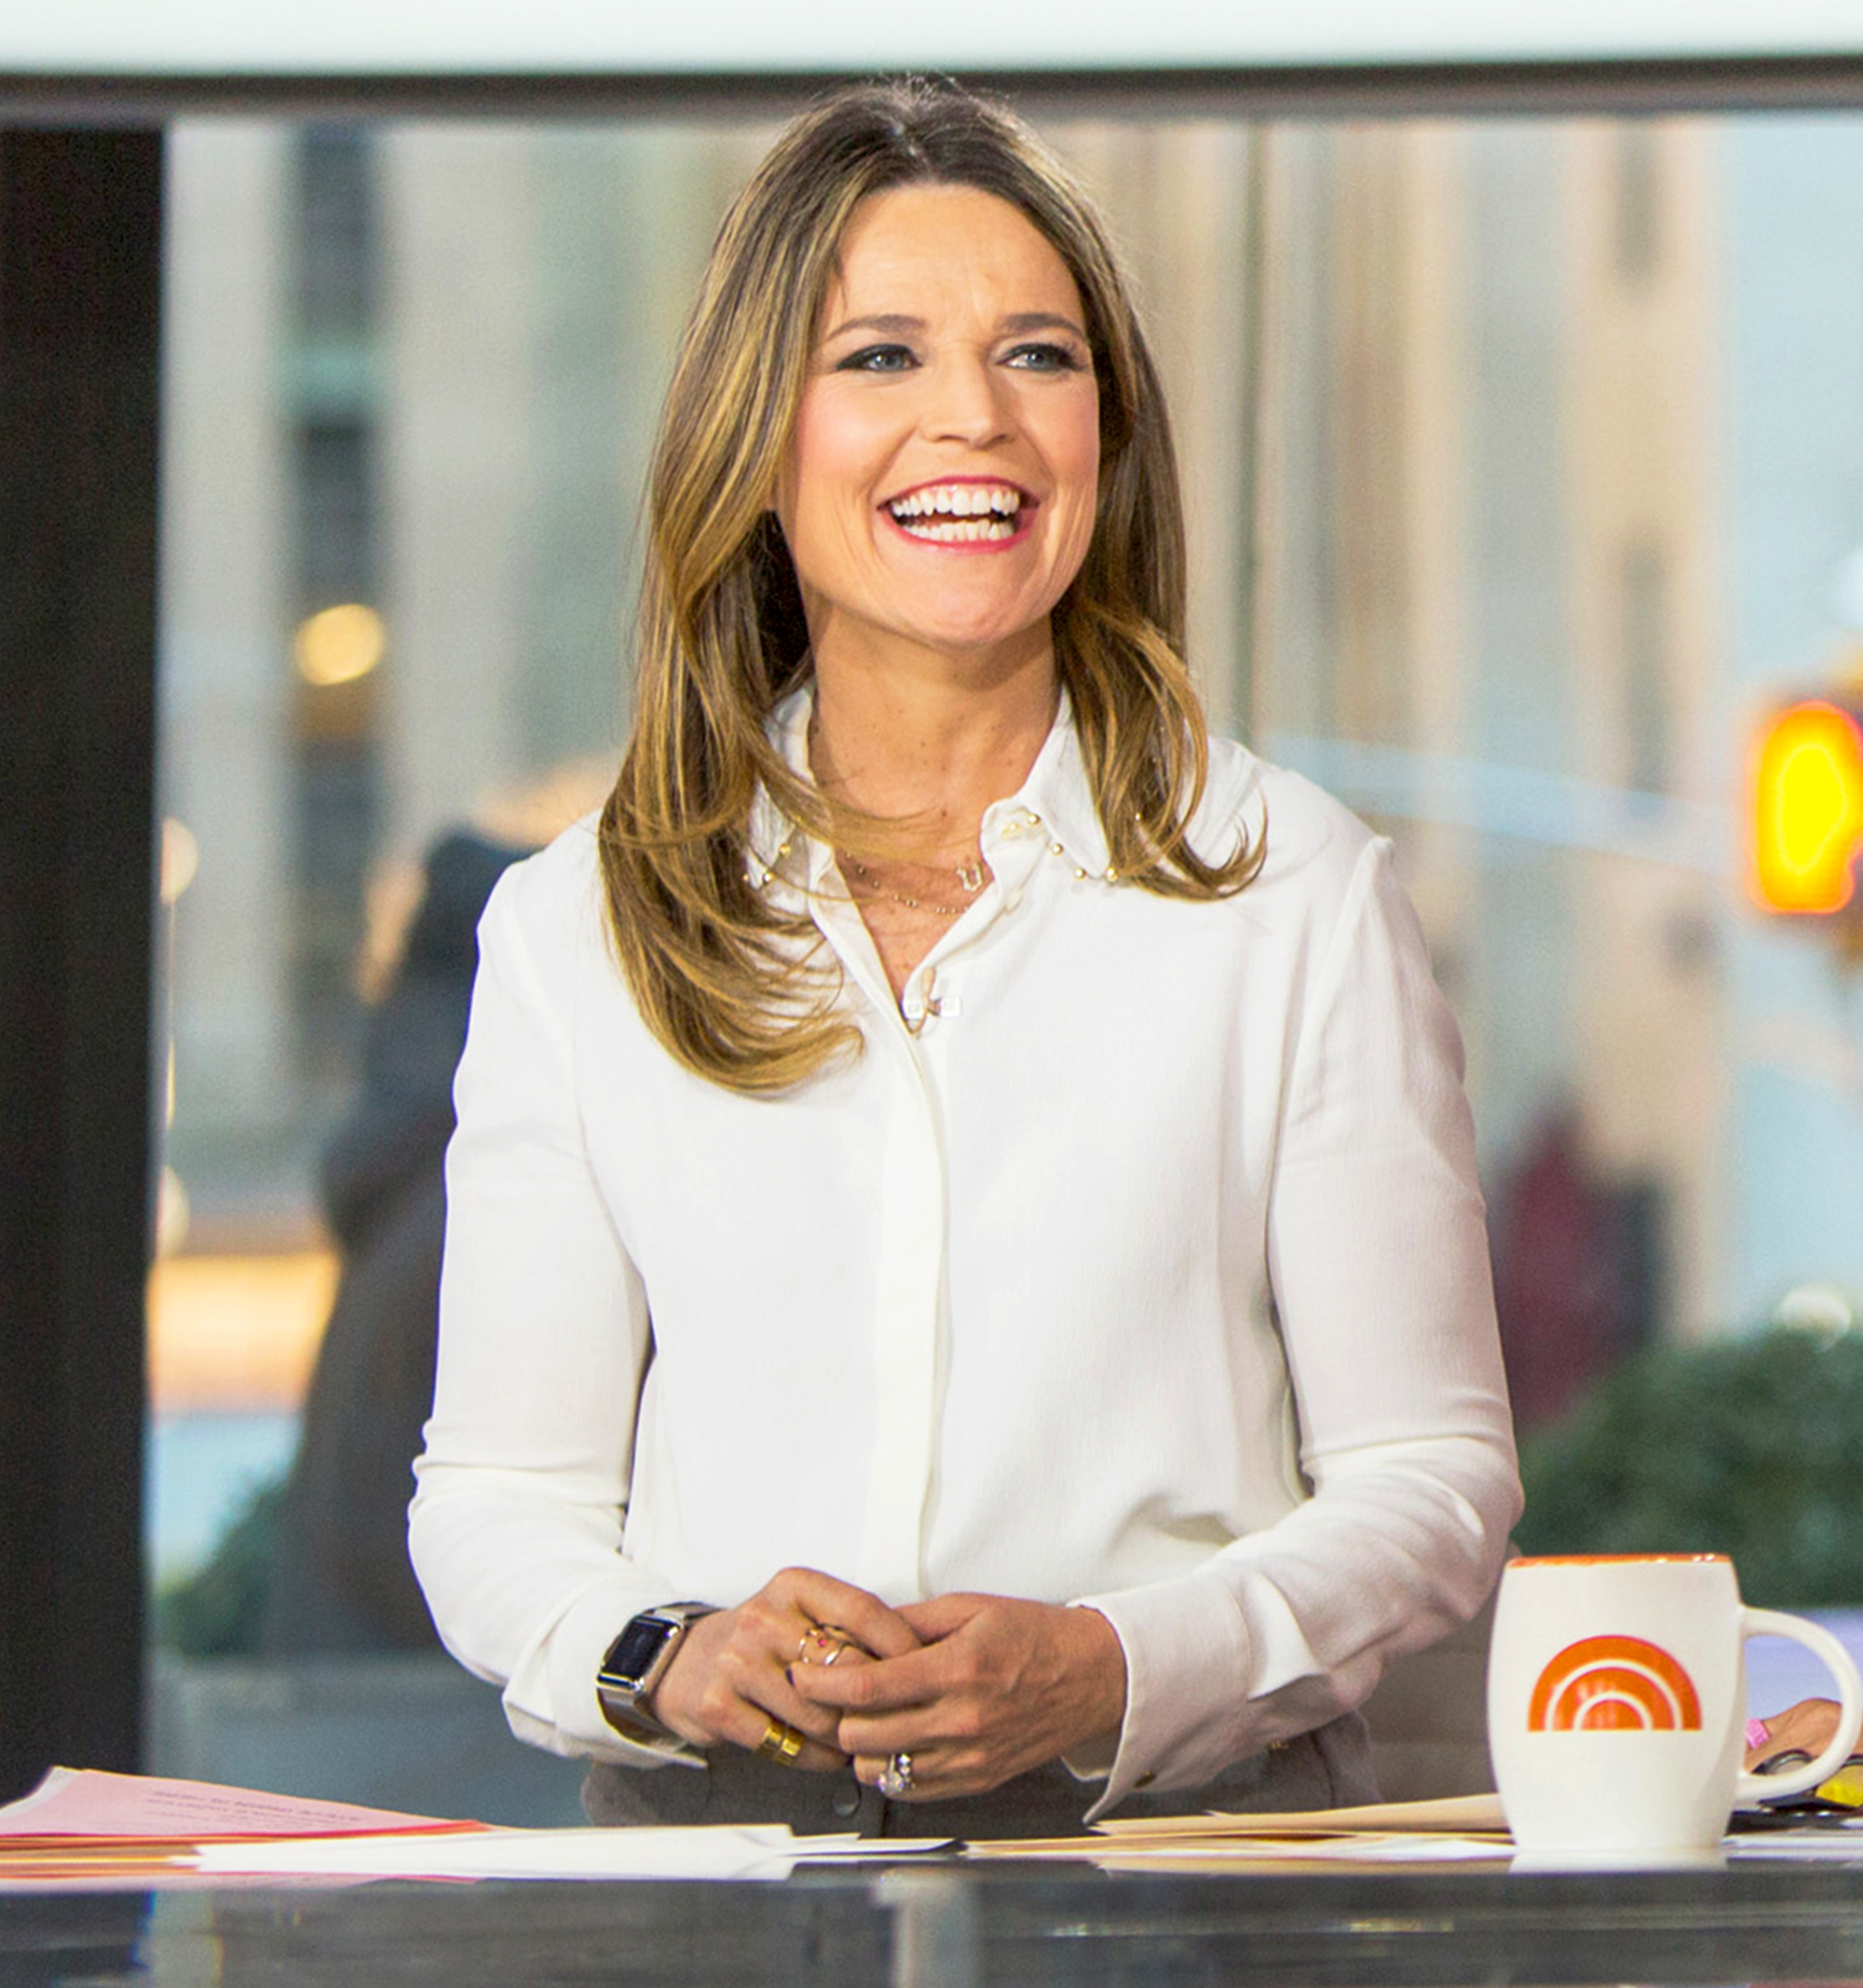 Savannah Guthrie Curses on Live TV, Issues Immediate Apology